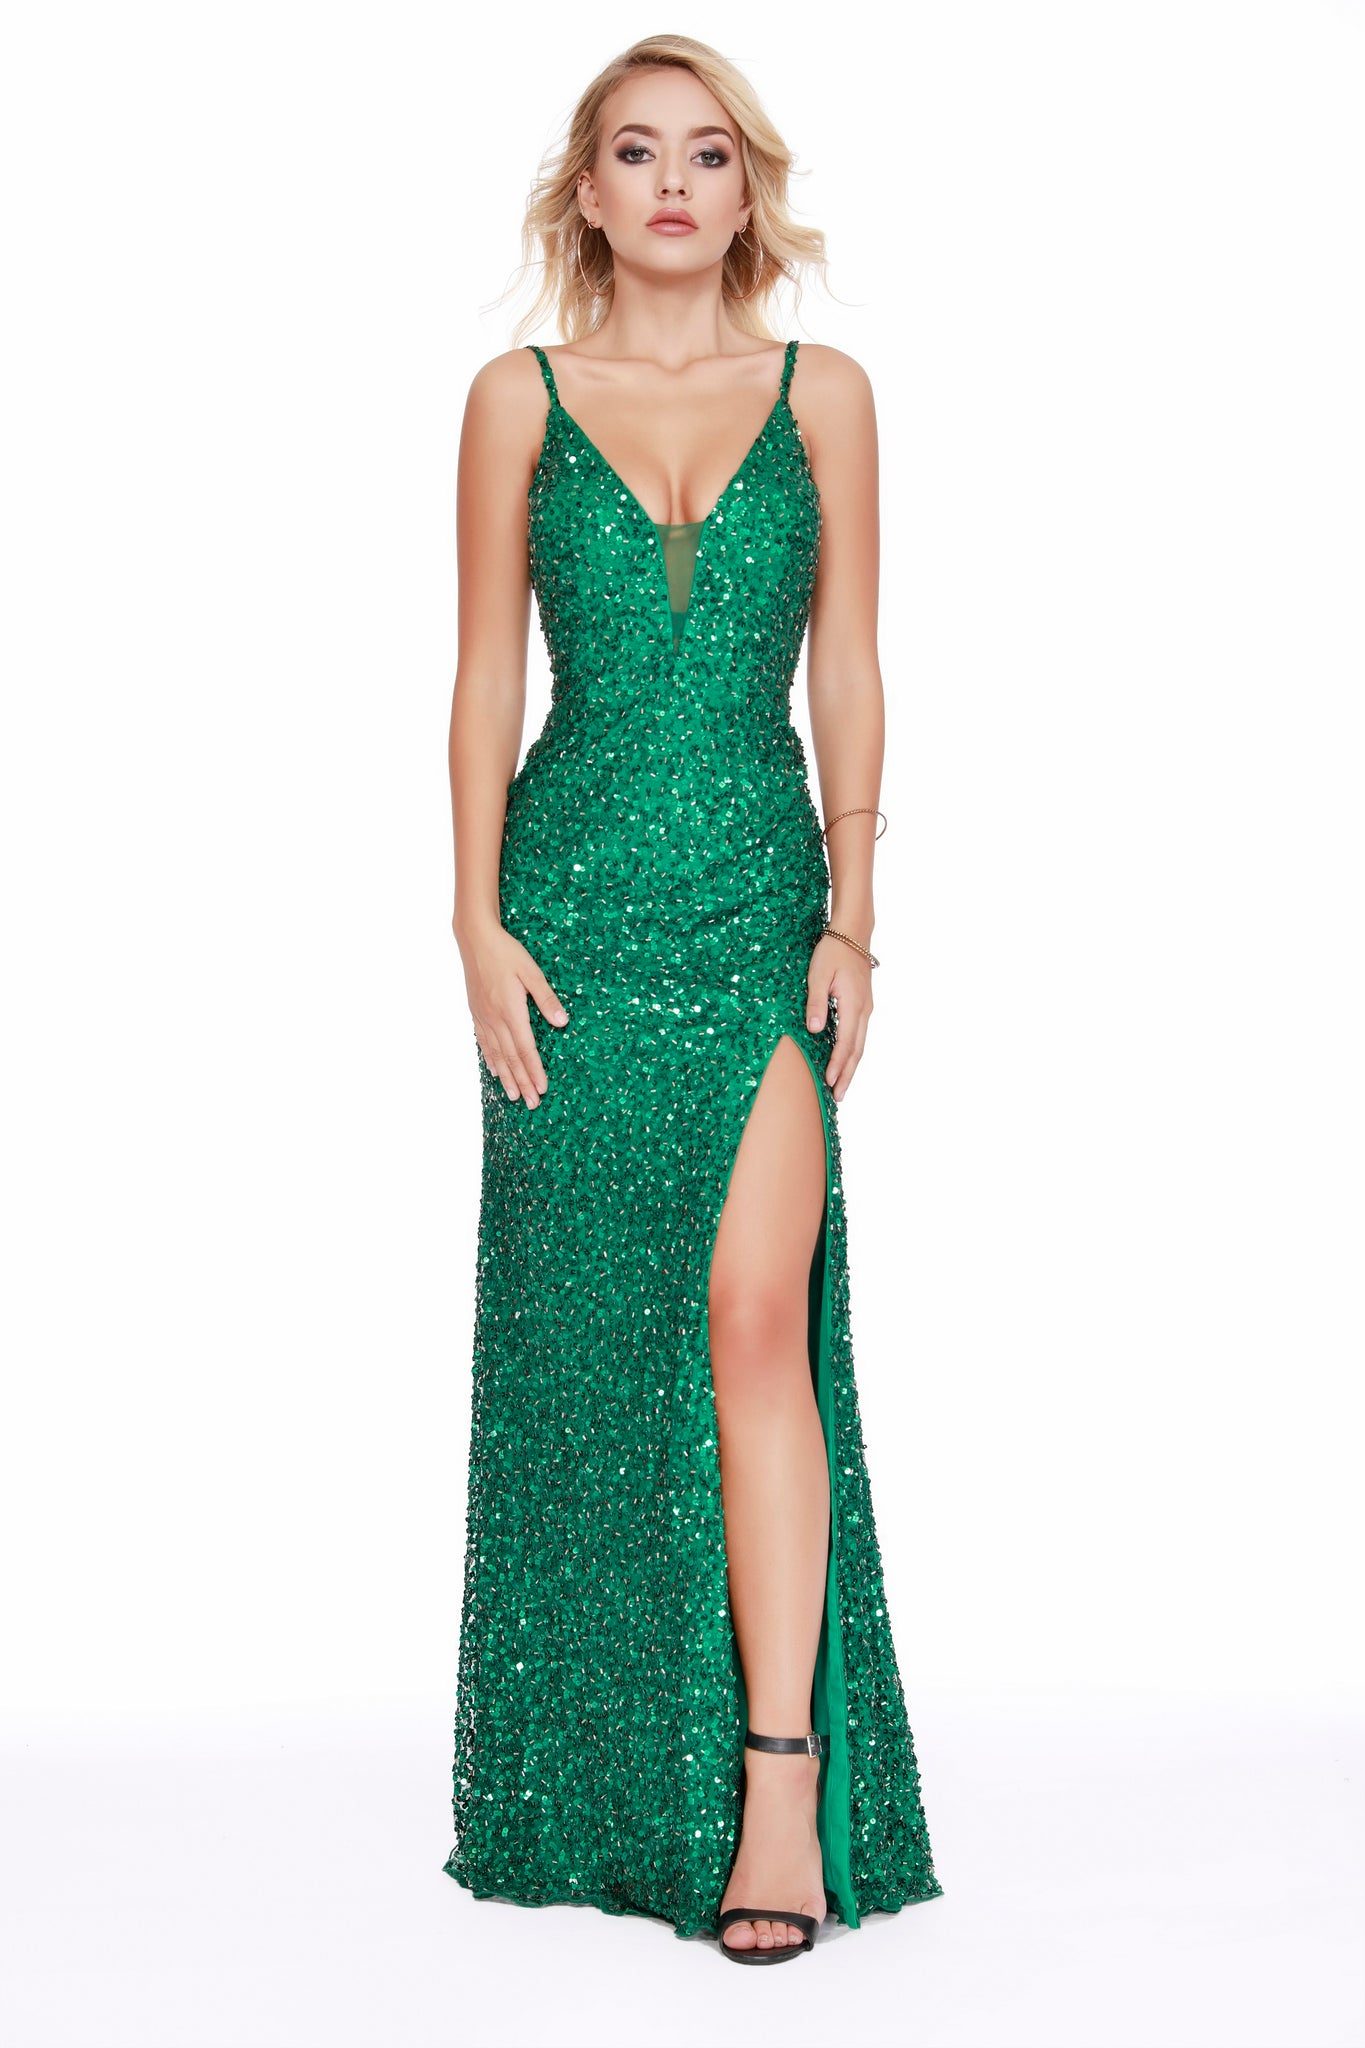 46376937 This Strapped V-Neck Sequin Body Hugging Emerald Prom Dress With Slit –  Shail K Dresses